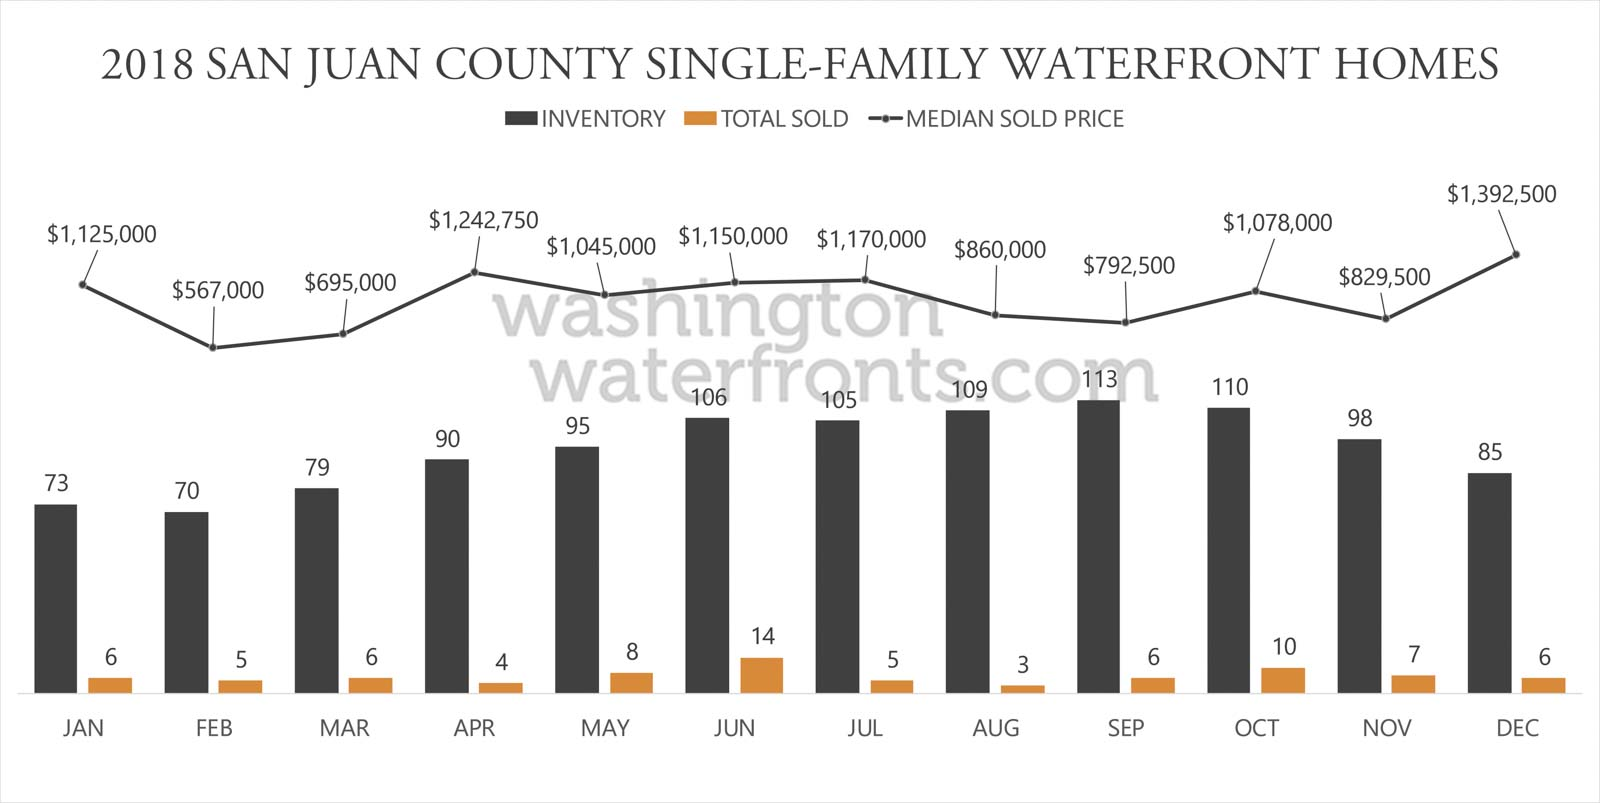 San Juan County Waterfront Inventory